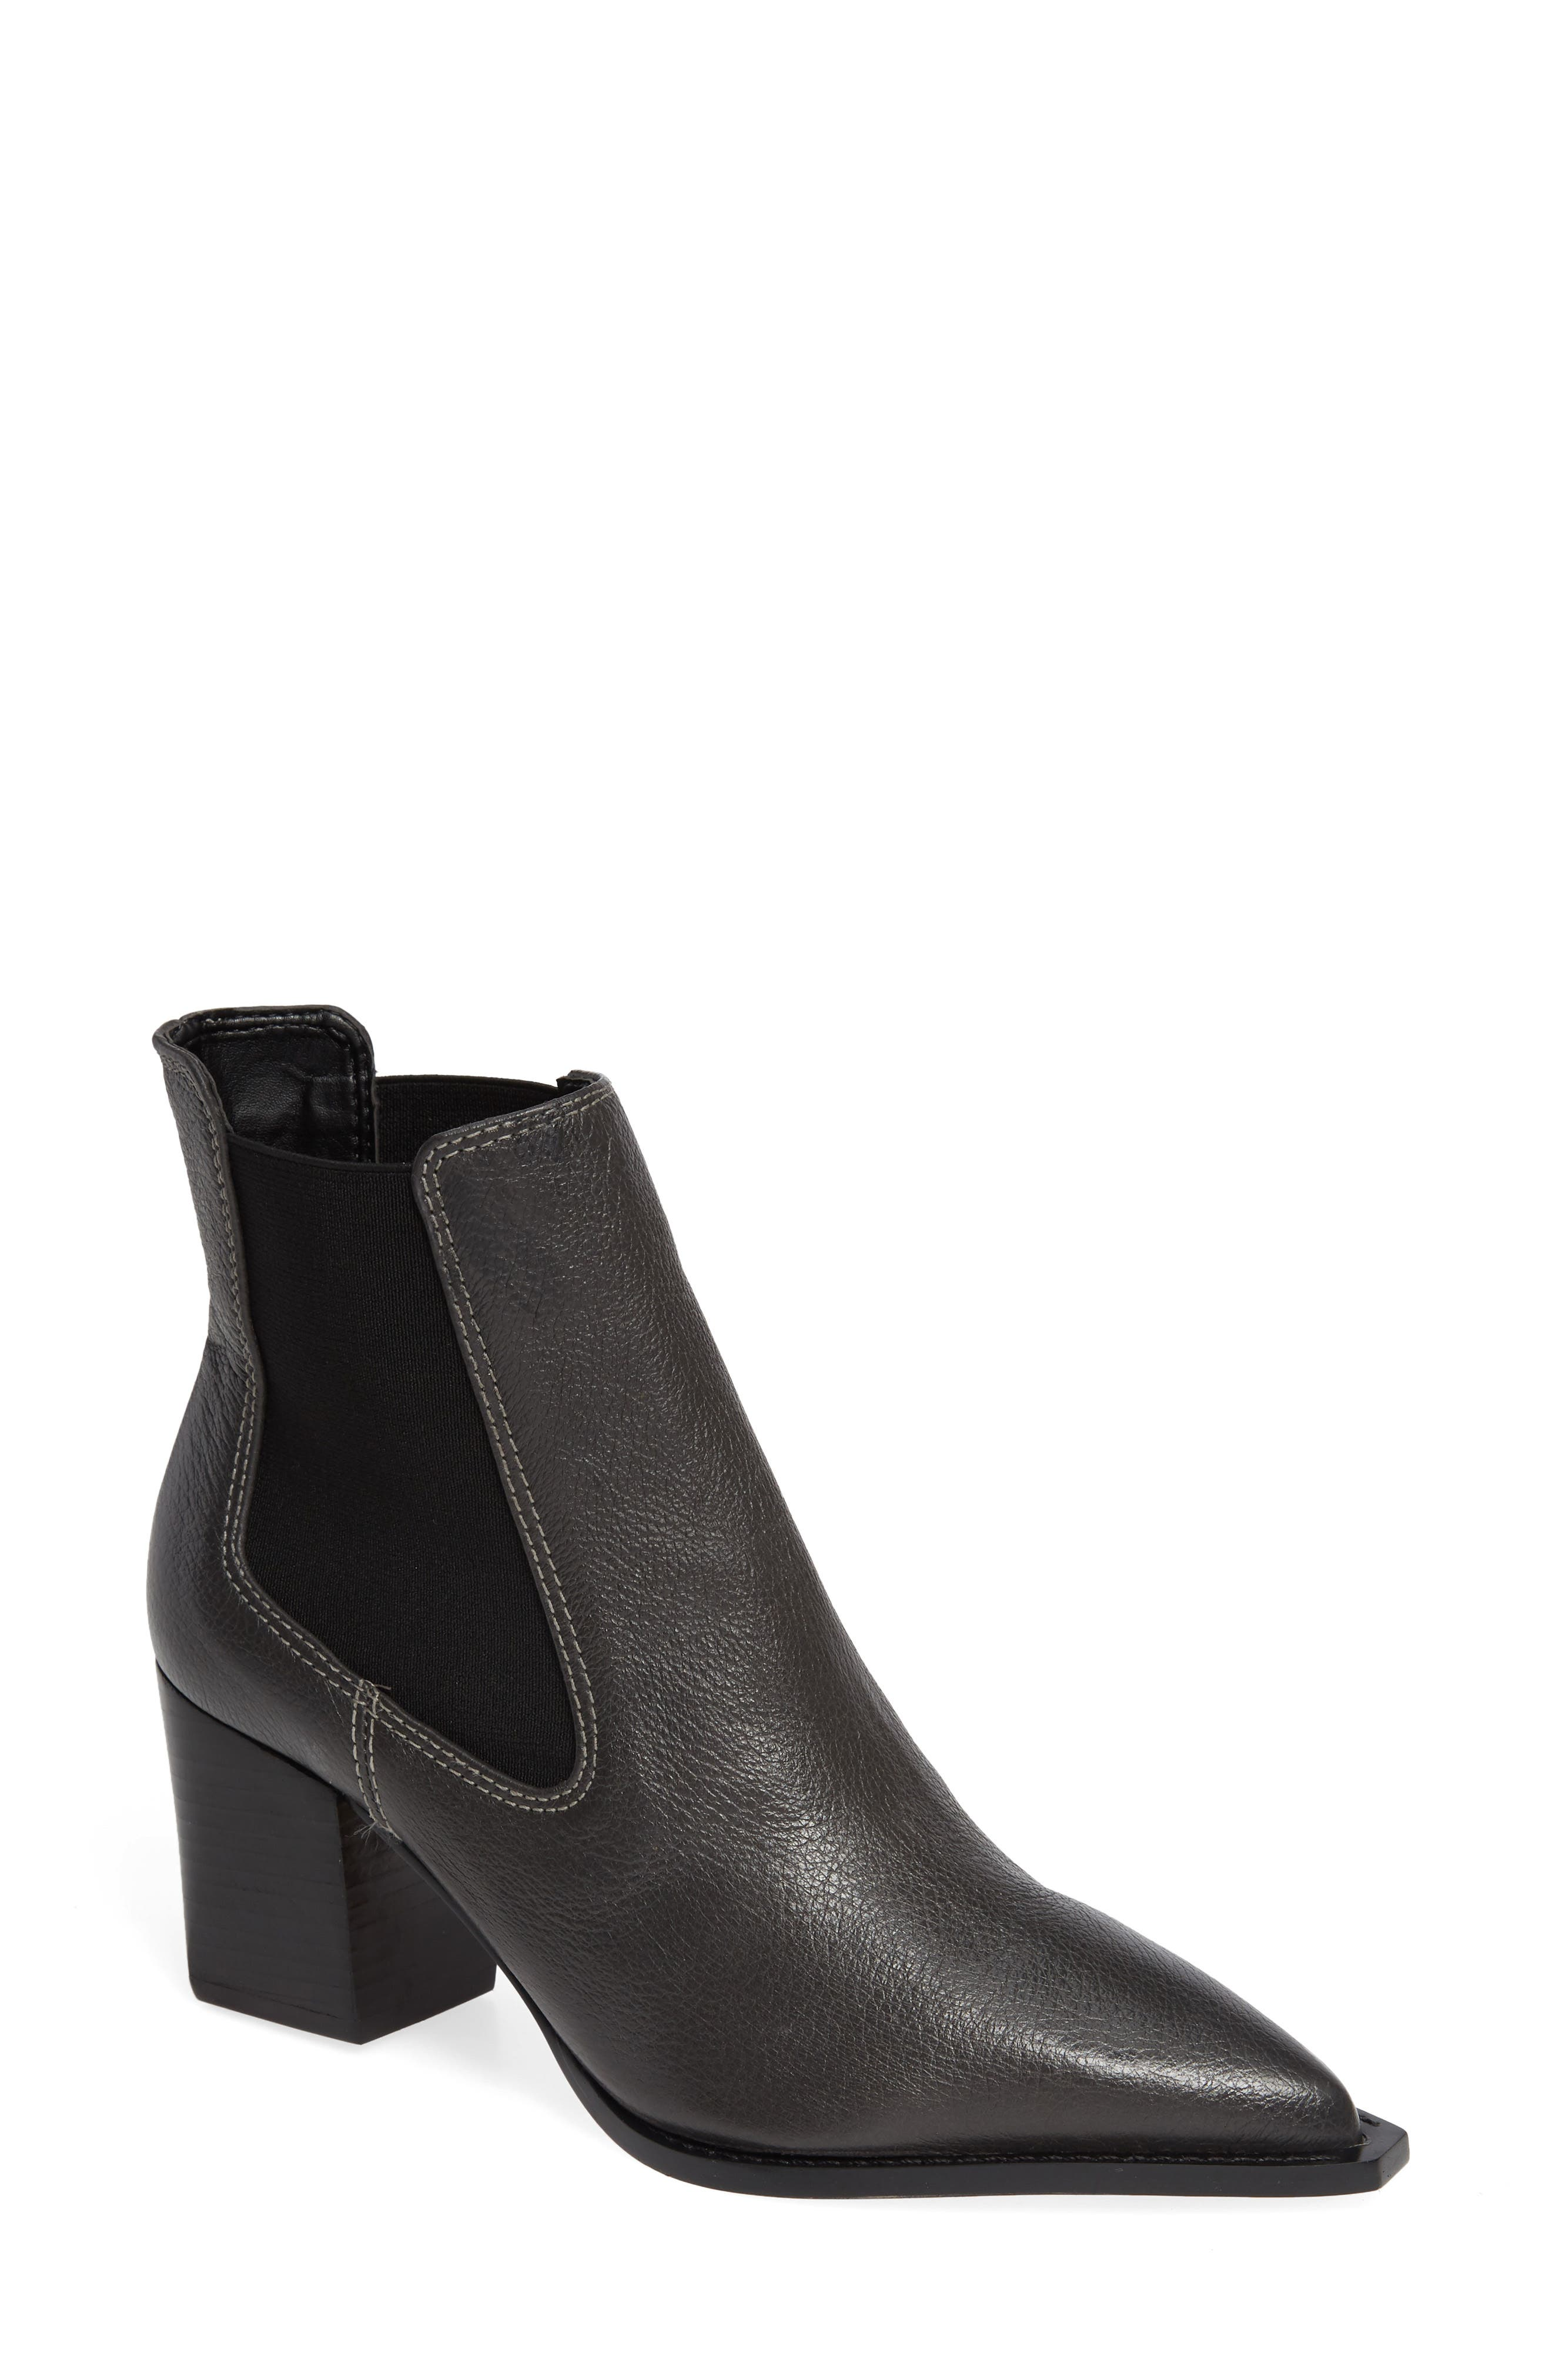 LUST FOR LIFE Tenesse Bootie in Mossy Grey Leather